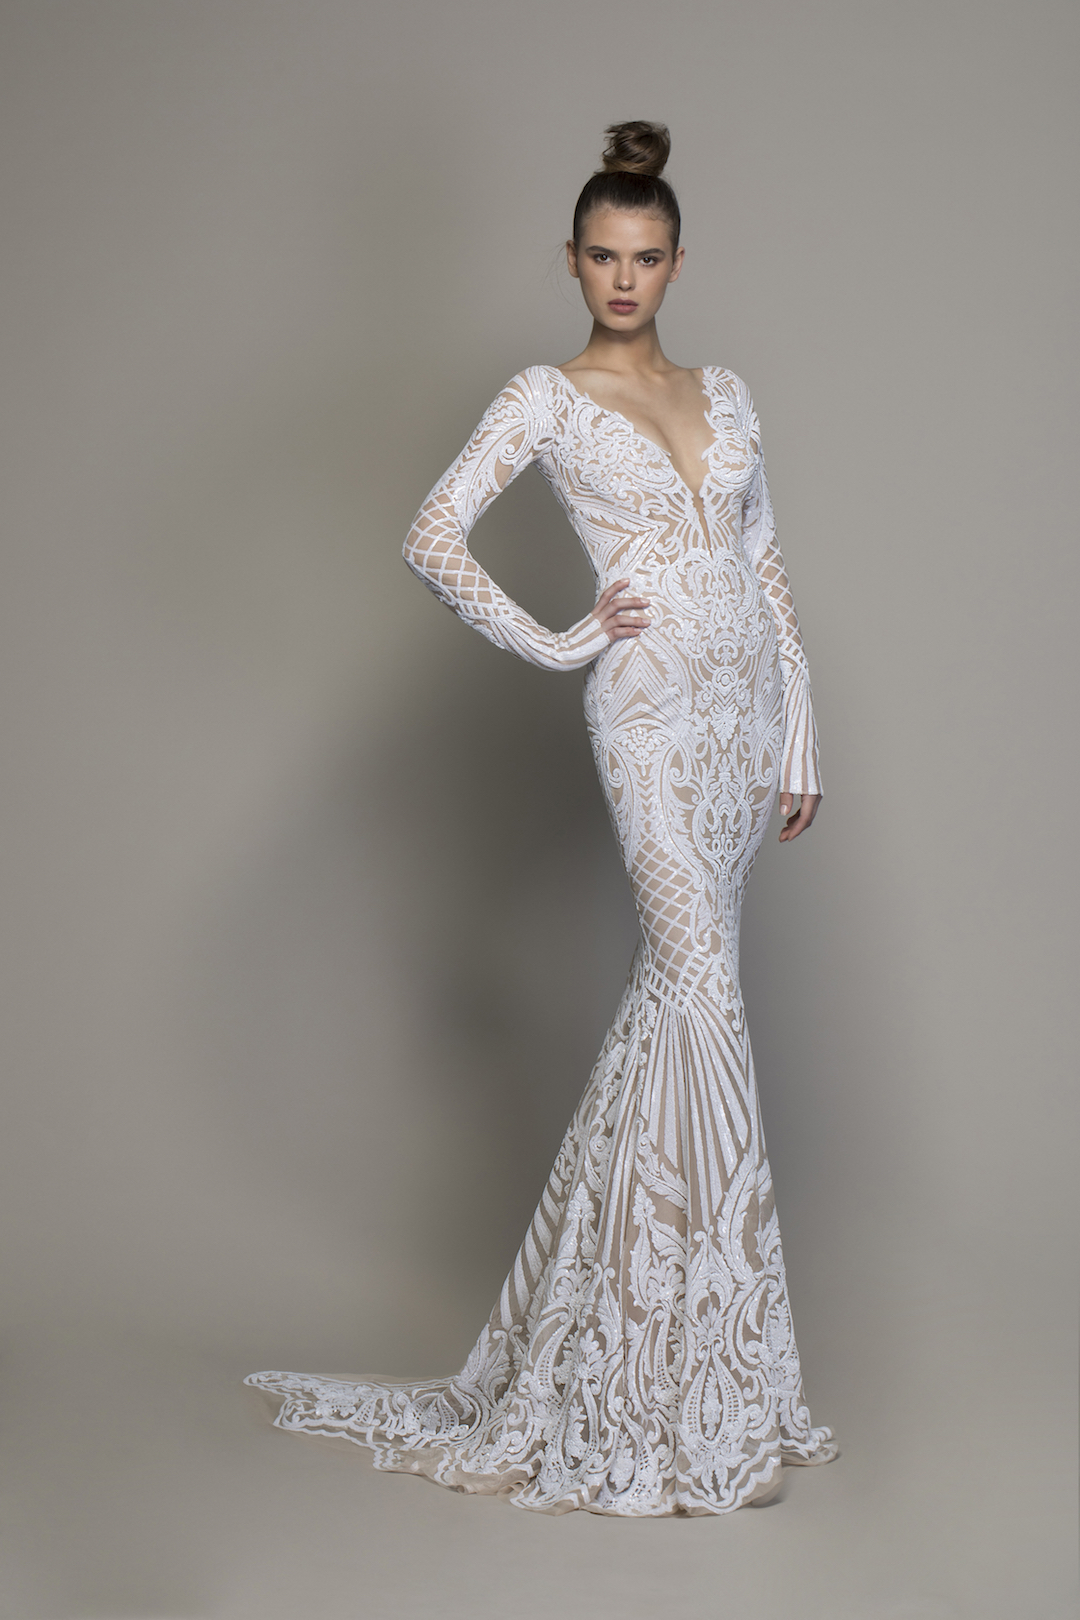 Pnina Tornai's new LOVE 2020 Collection is out! This is style 14775